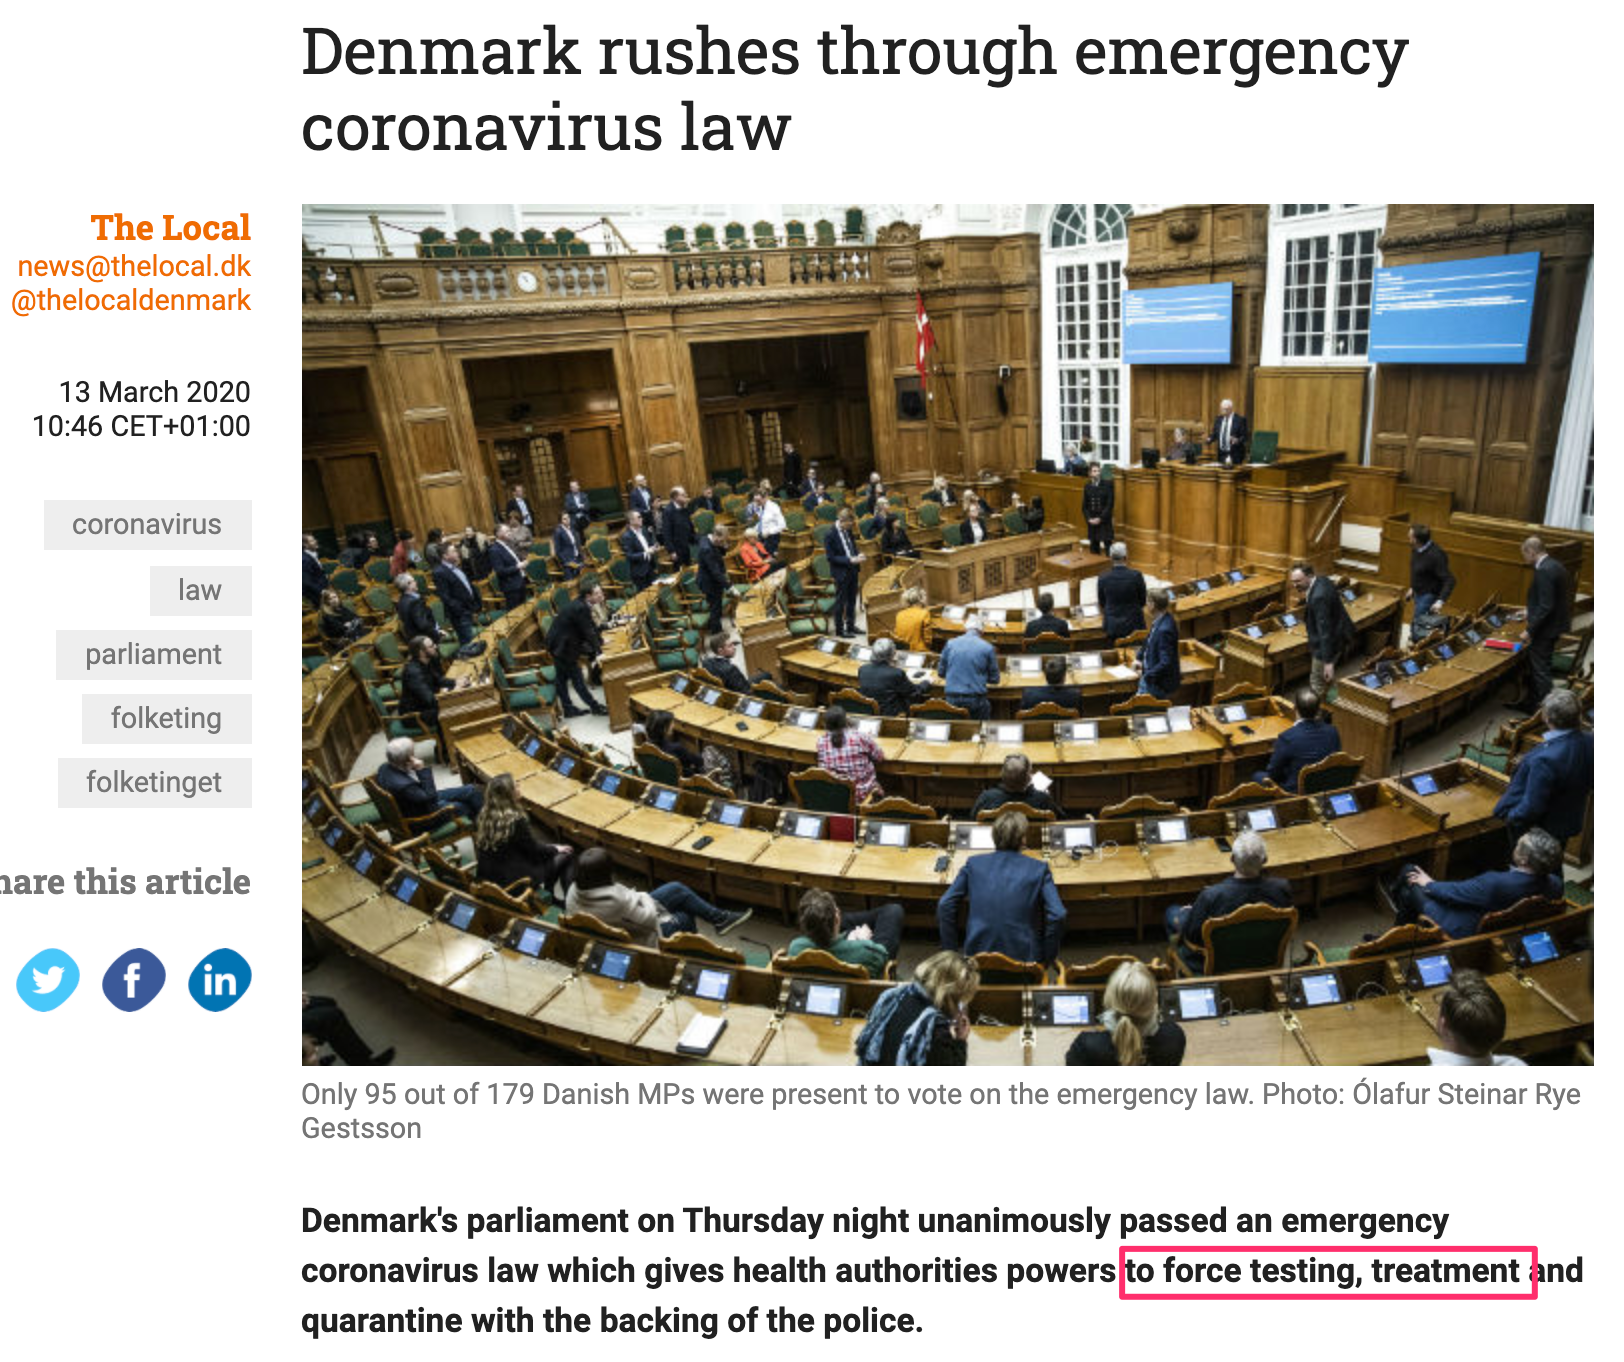 Denmark_rushes_through_emergency_coronavirus_law_-_The_Local.png